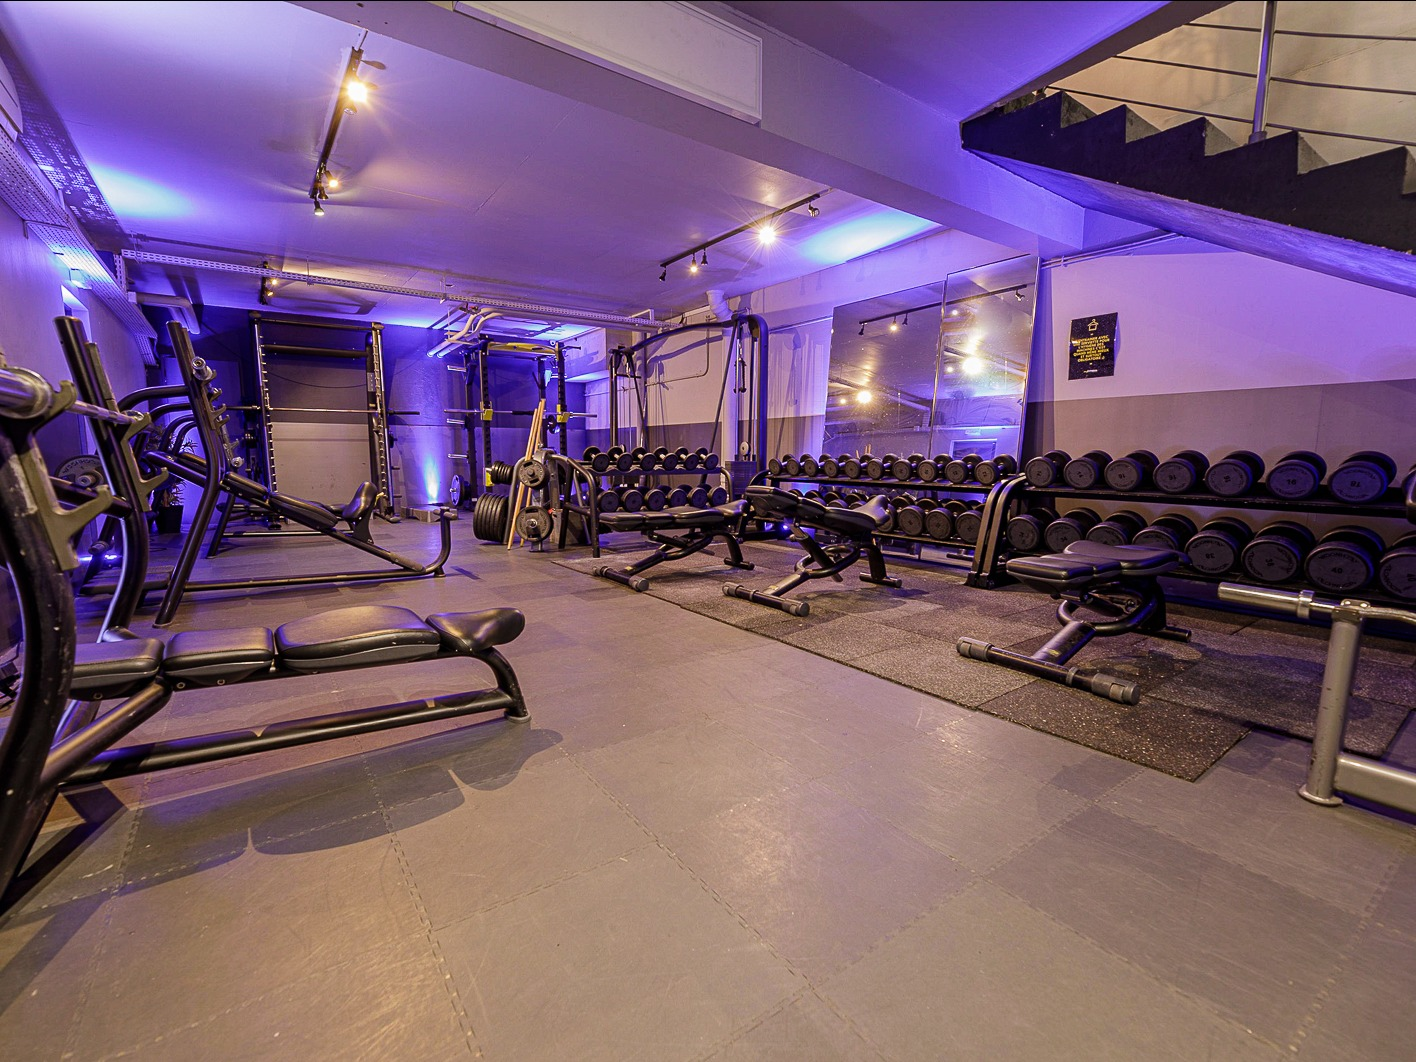 My Fitness Studio Paris 20-0